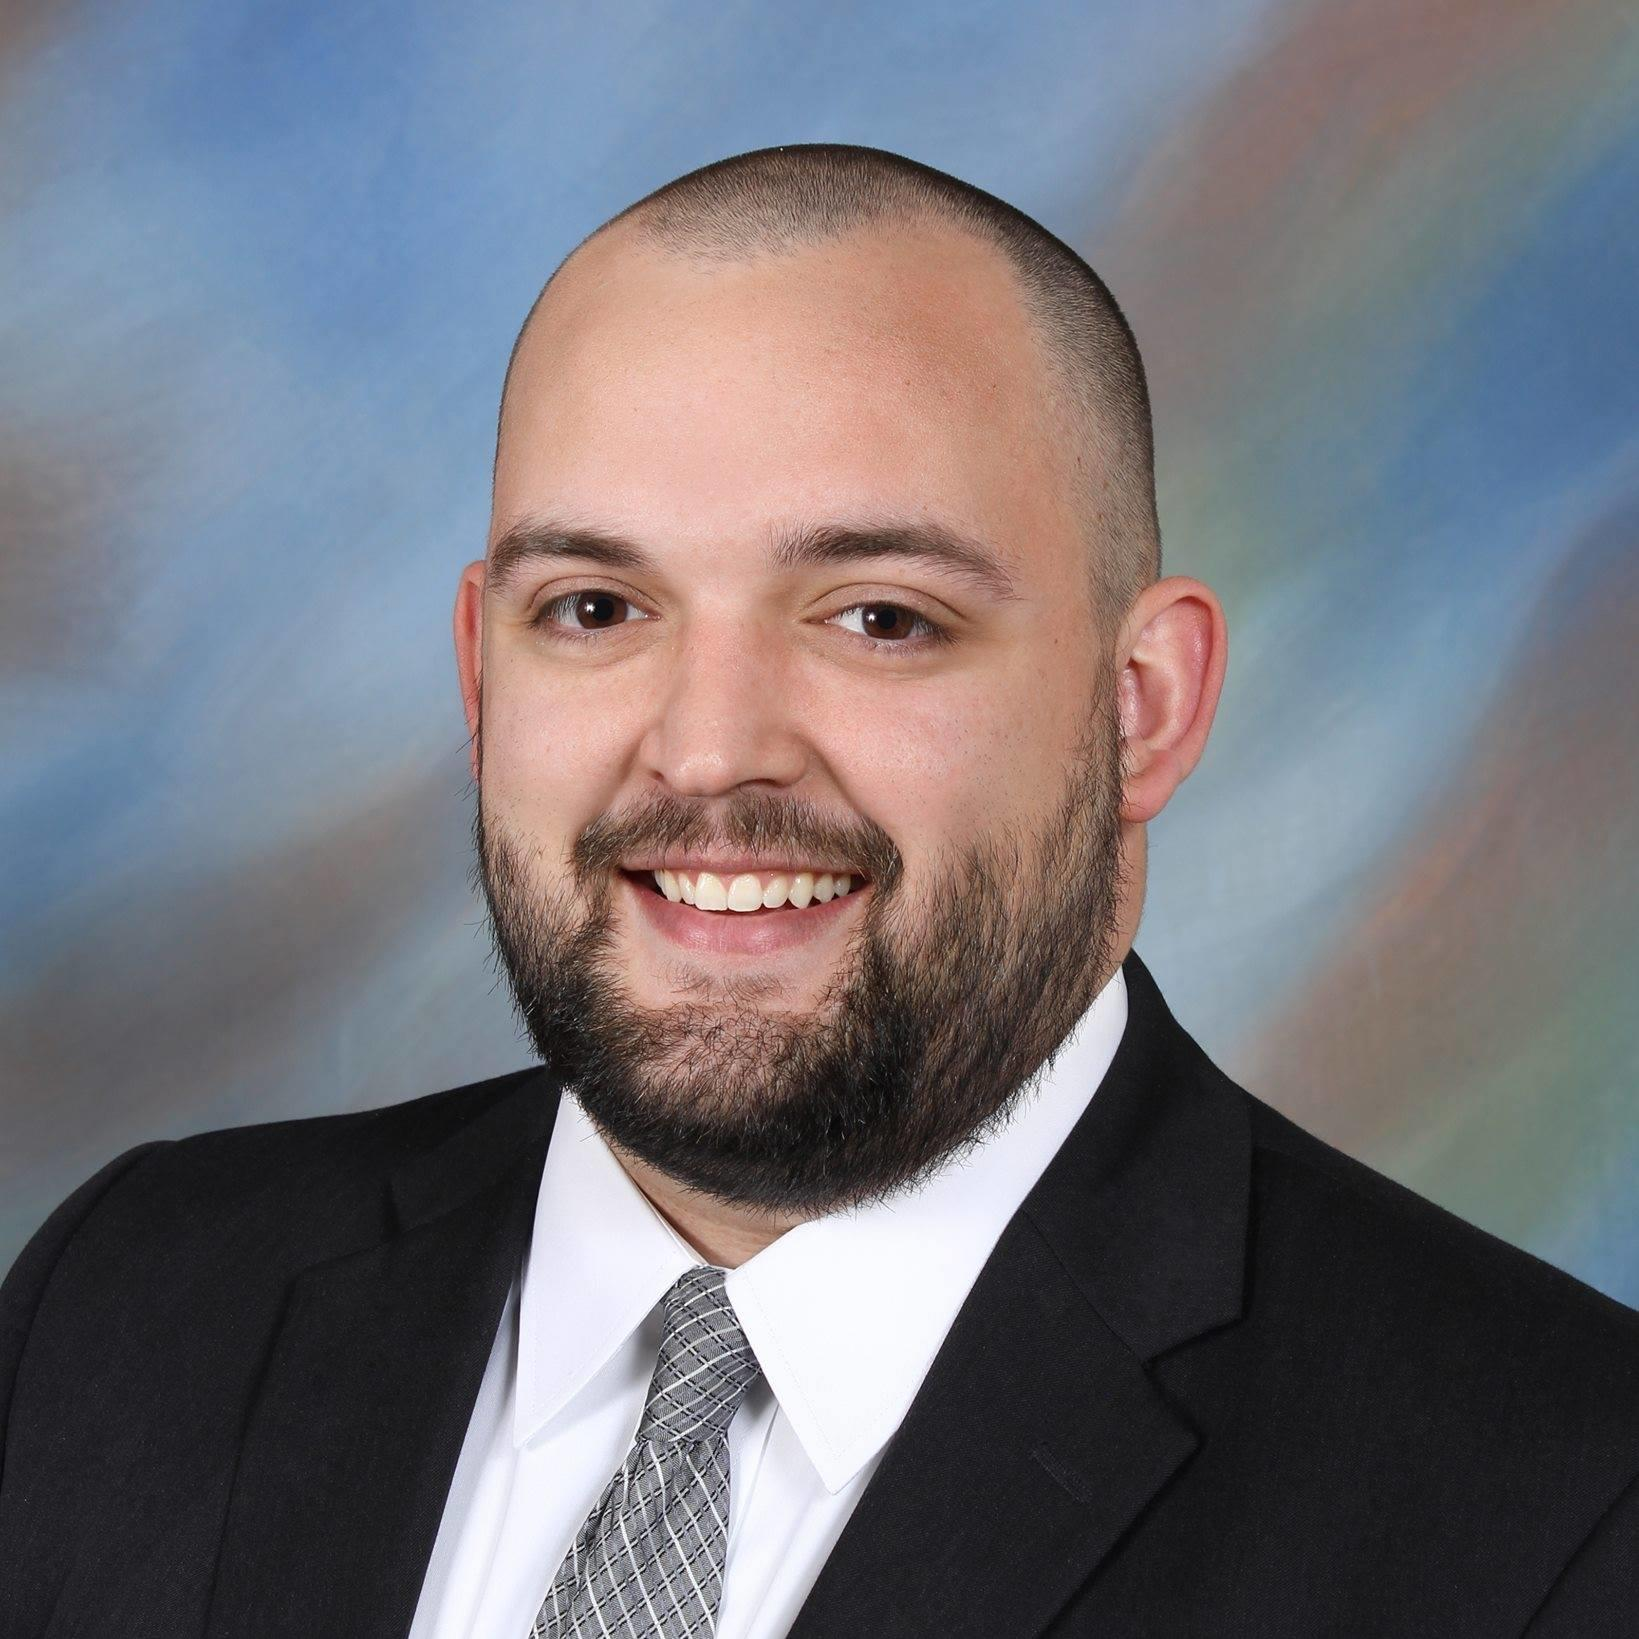 Law Office of Andrew Sorrentino, PLLC